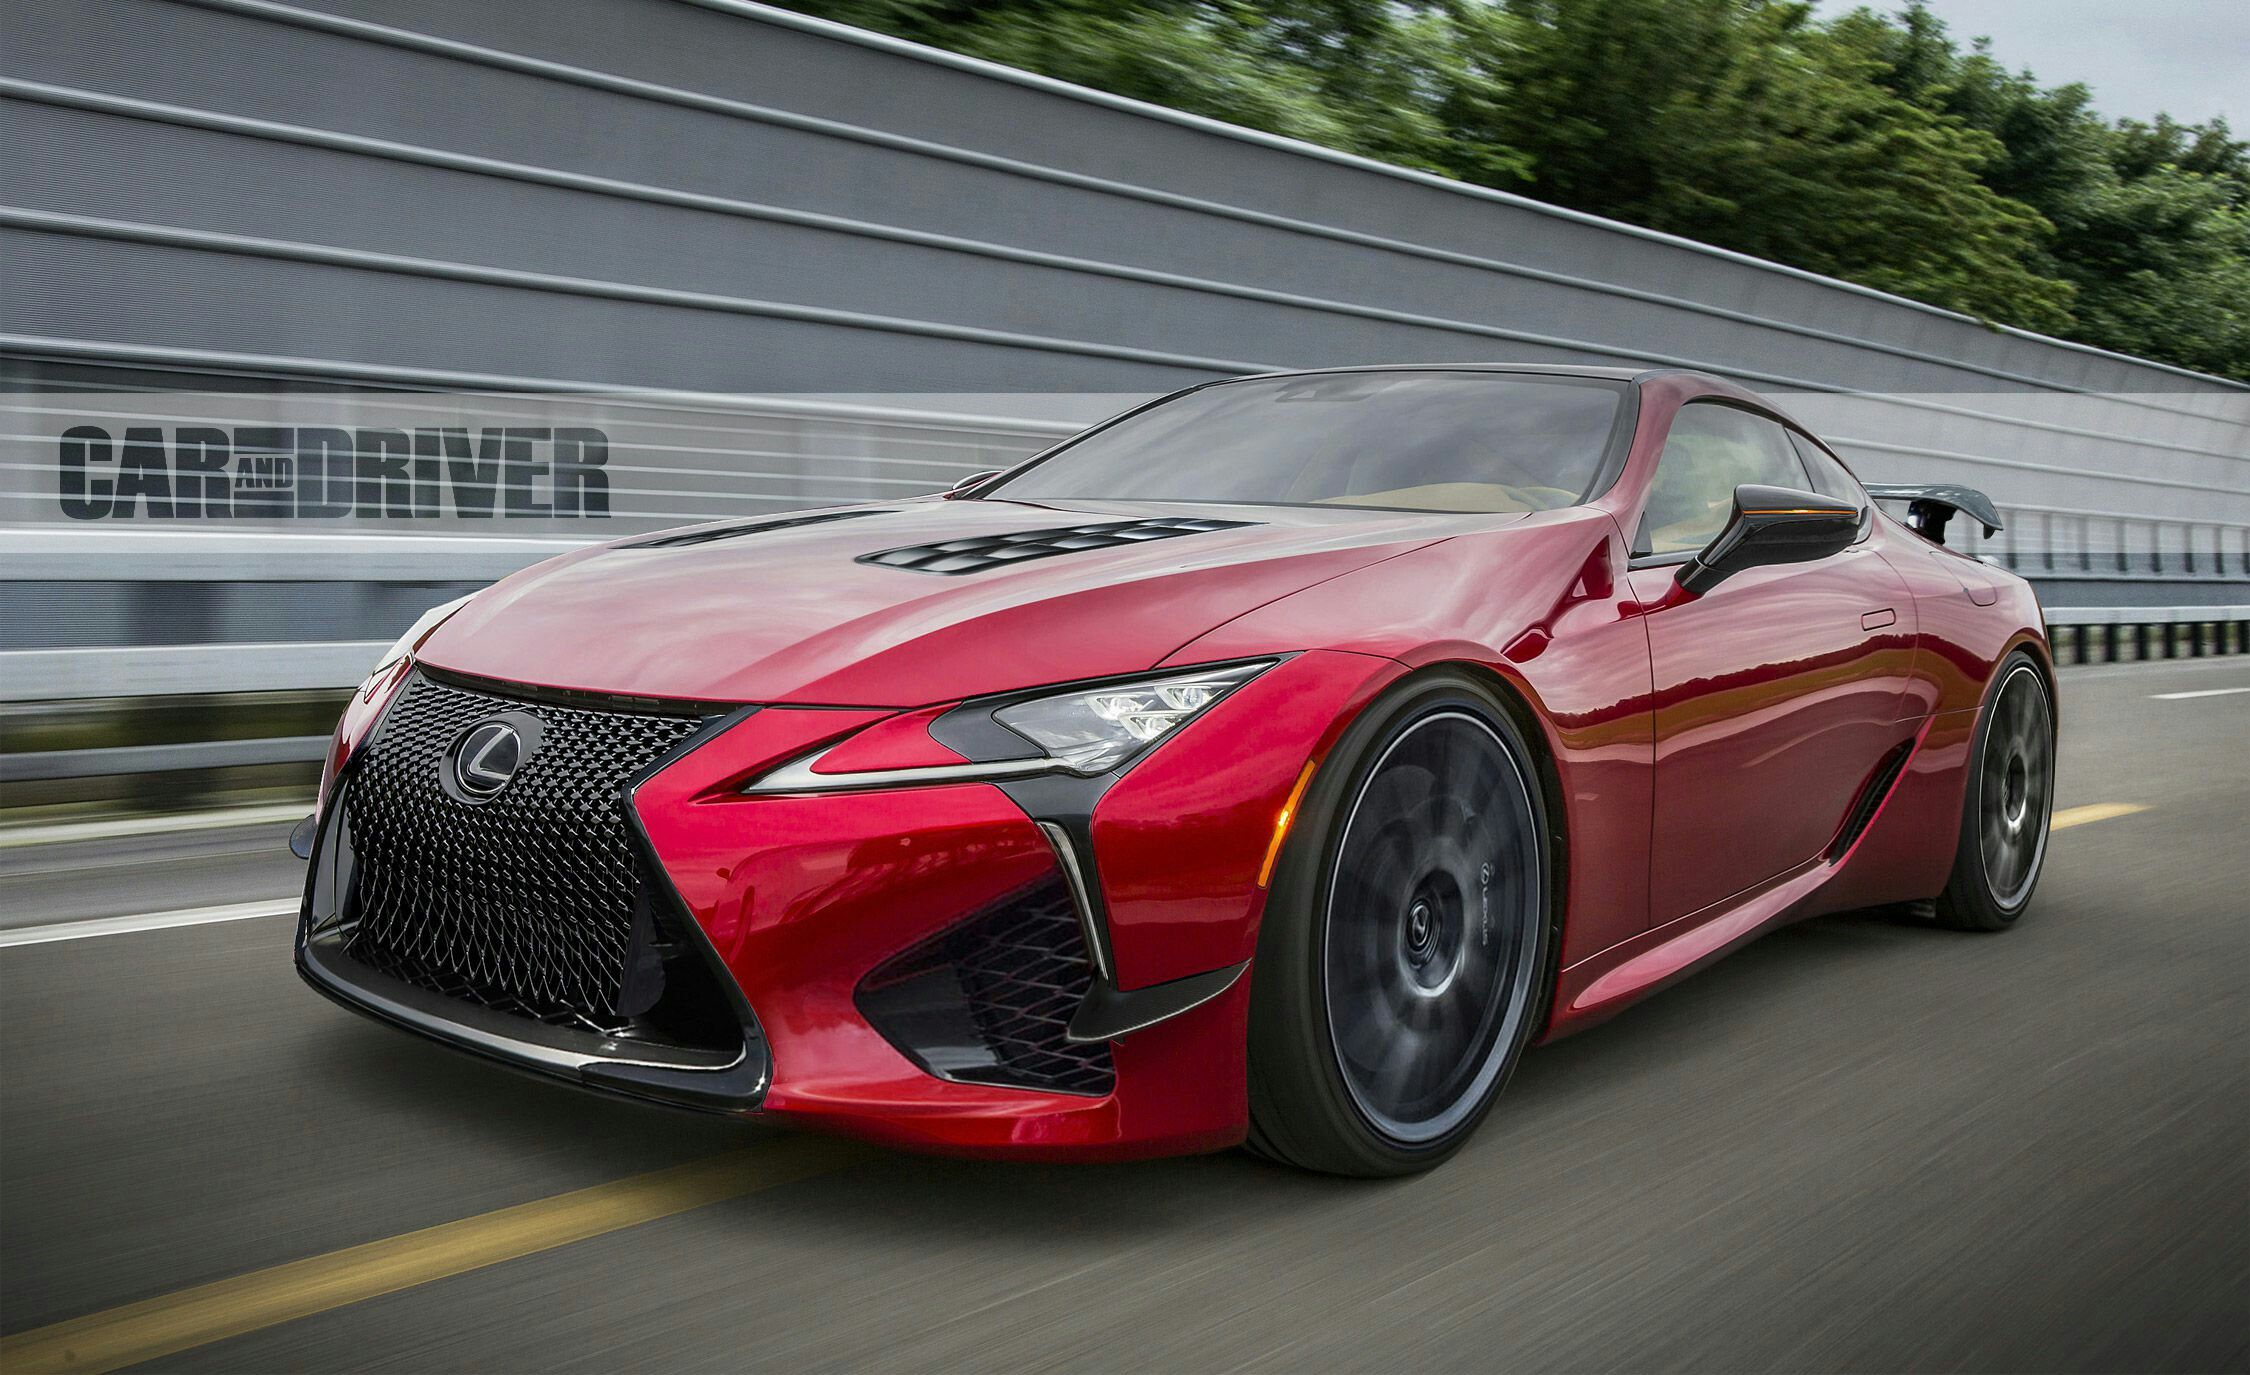 Pin by Chris Eggleston on CARS (With images) Lexus lc